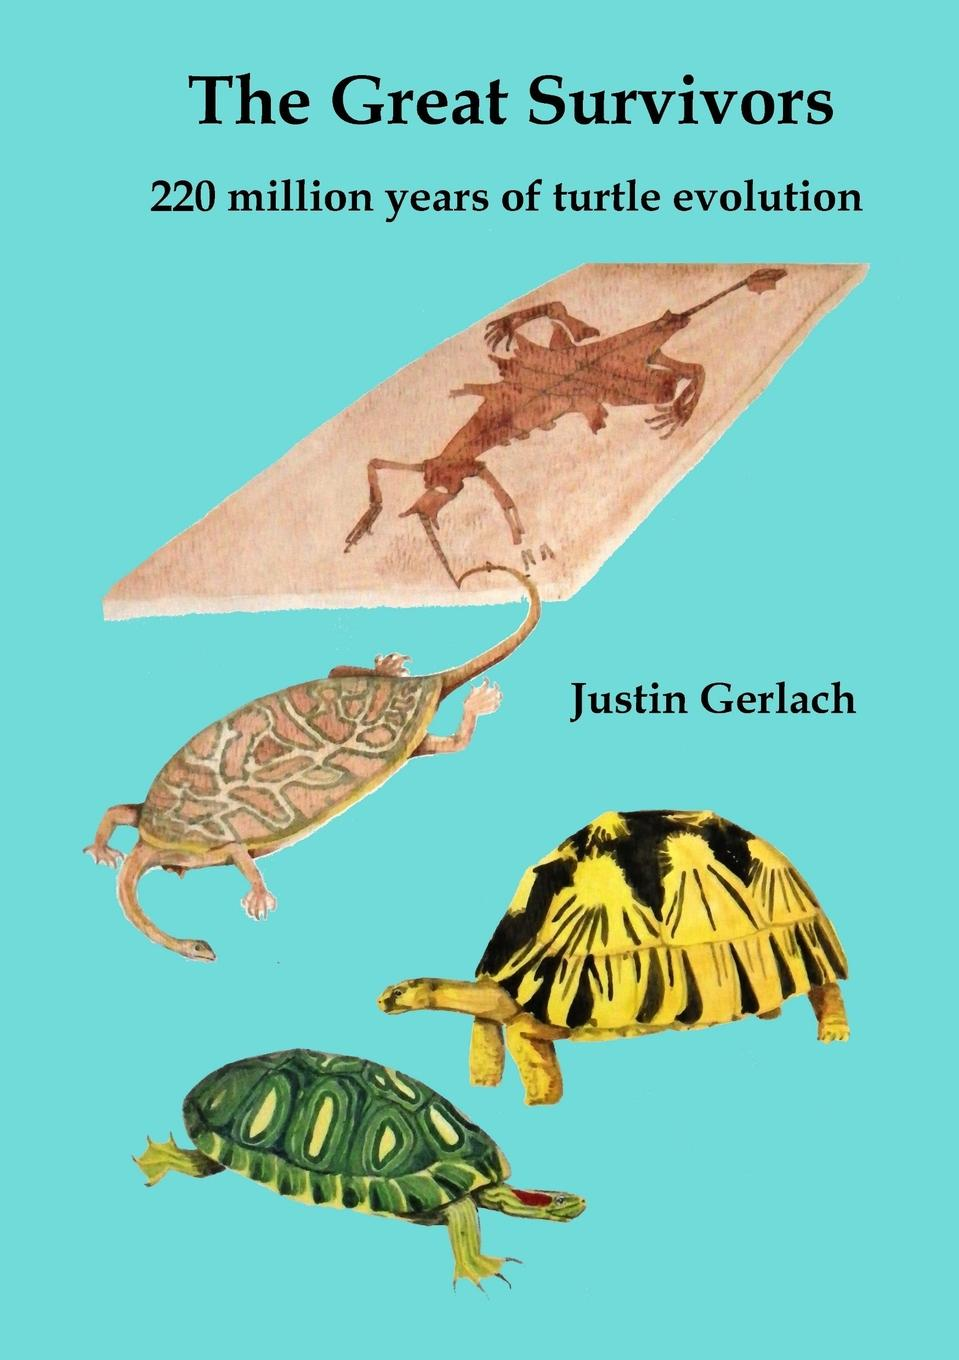 Justin Gerlach The Great Survivors lieberman bruce s prehistoric life evolution and the fossil record